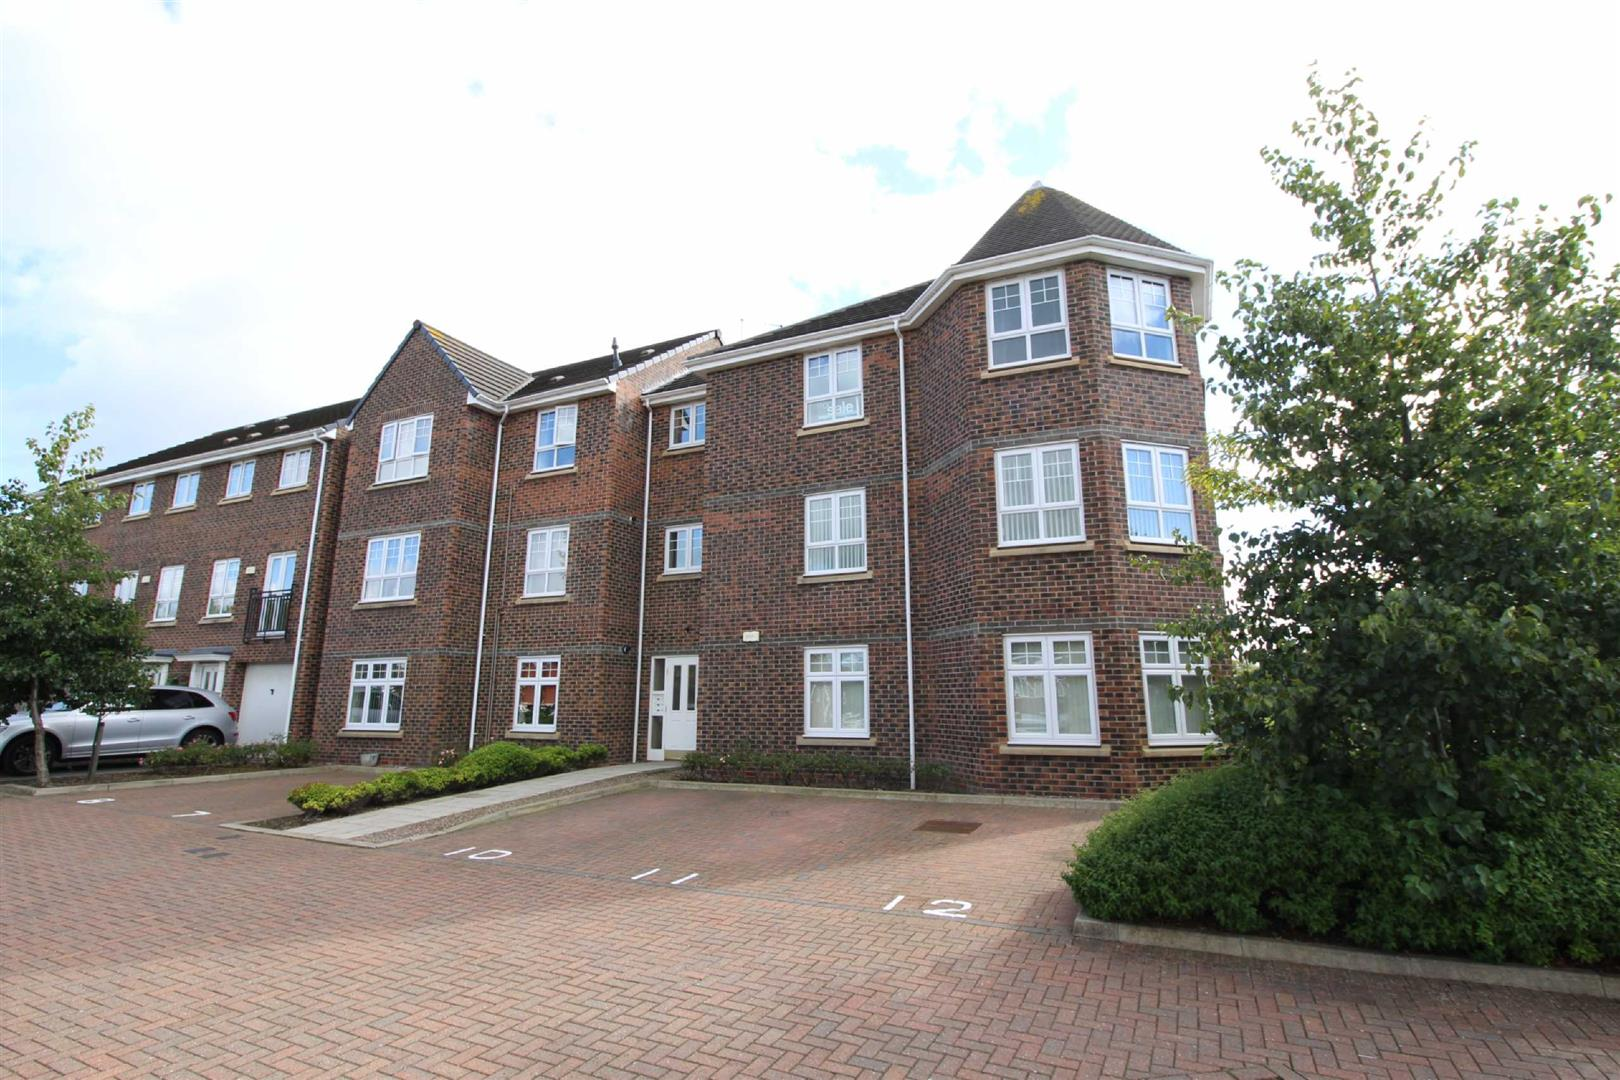 2 Bedroom Apartment For Sale In Newcastle Upon Tyne